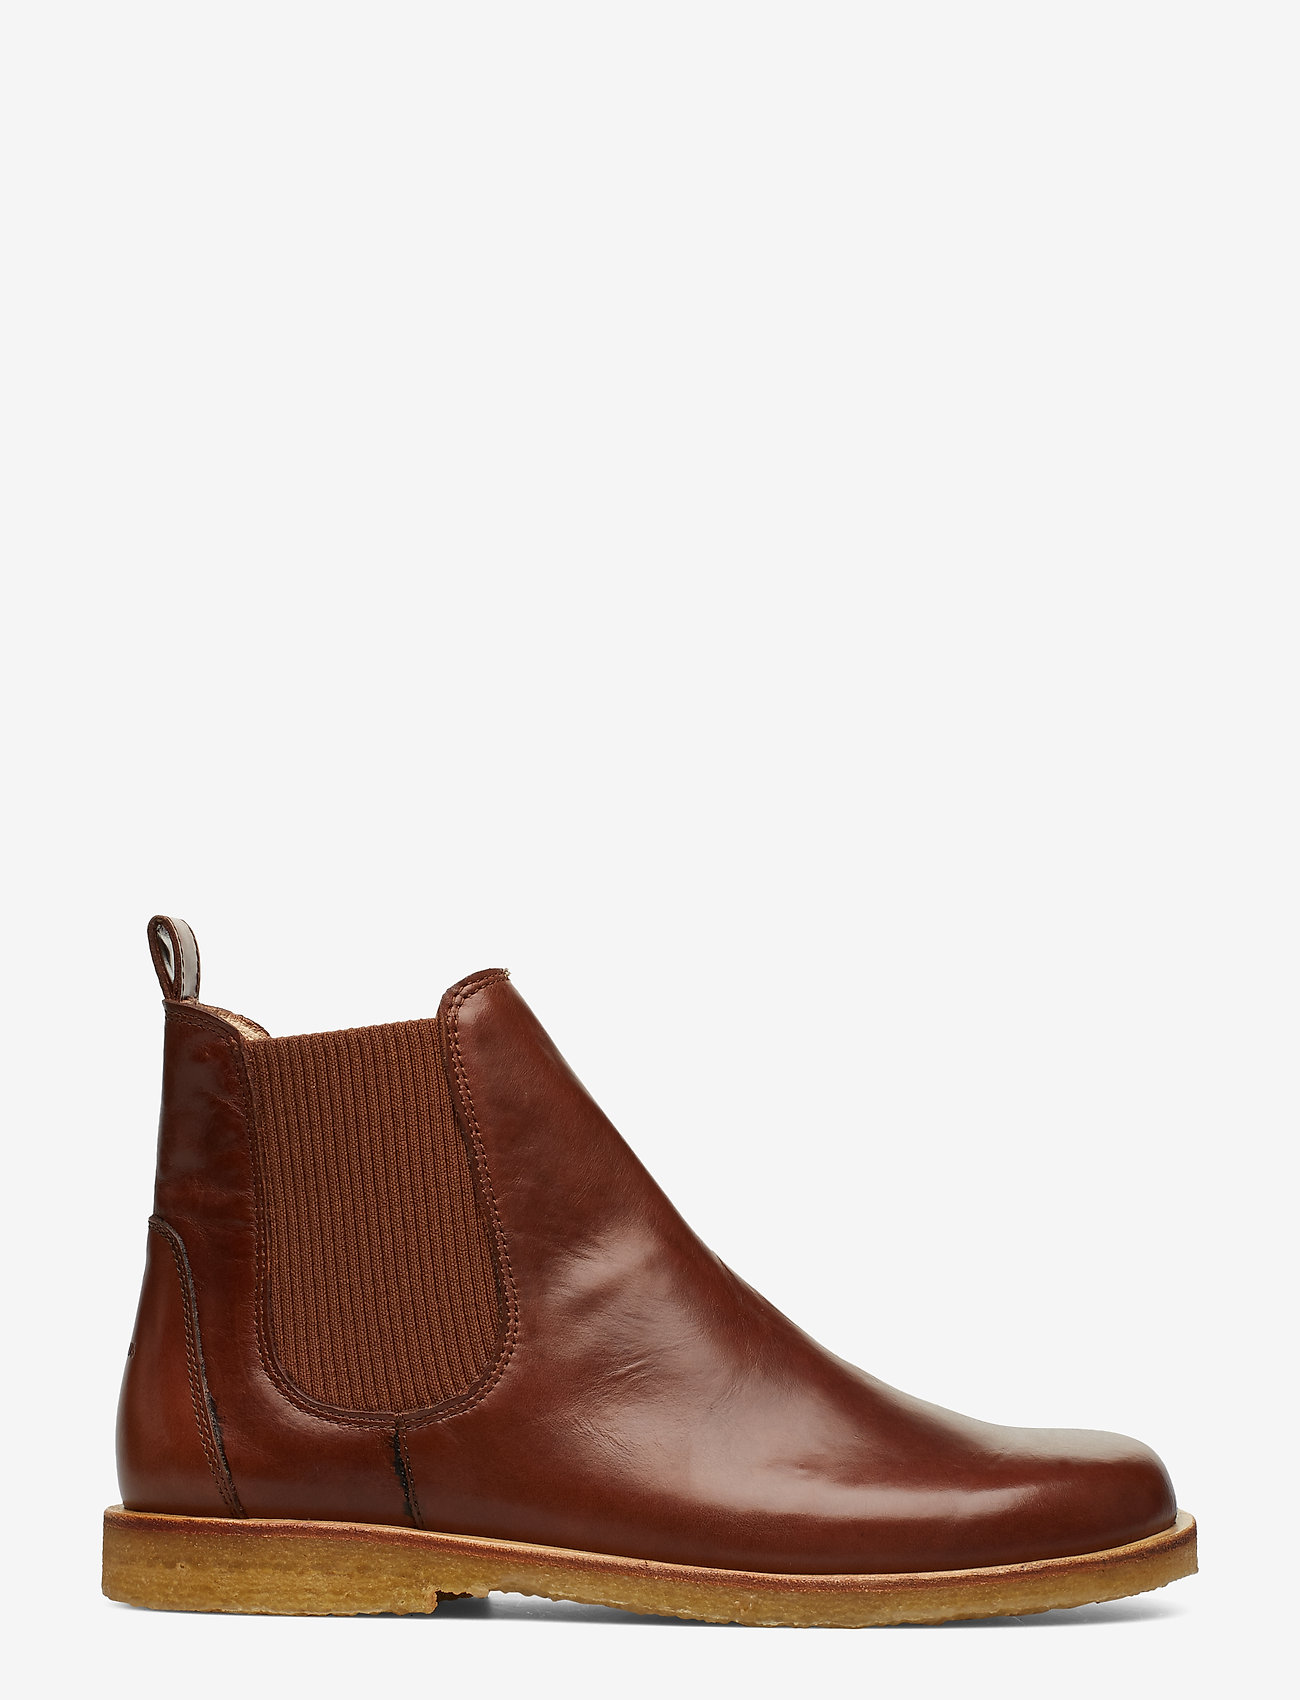 ANGULUS - Booties-flat - with elastic - chelsea støvler - 1837/040 brown/ brown - 1